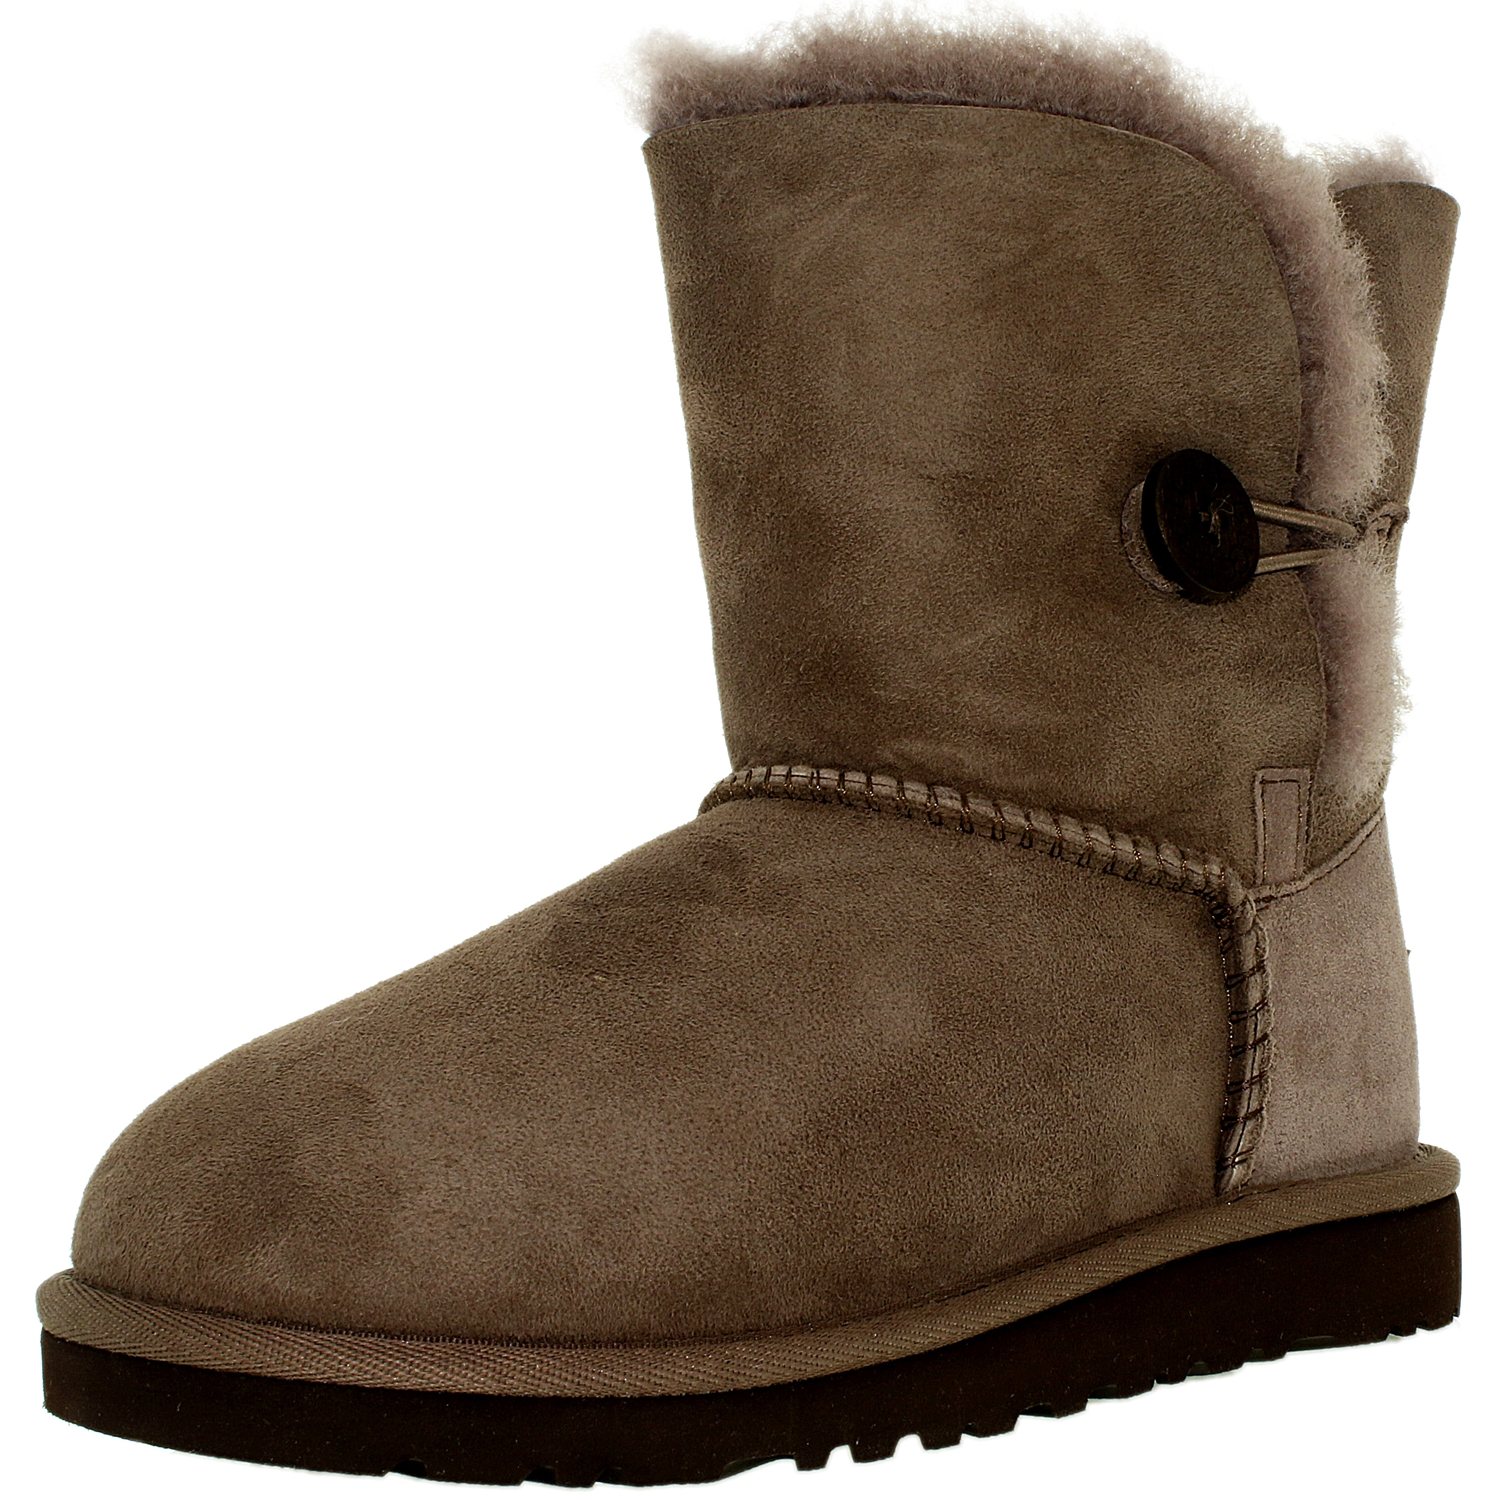 Ugg Girl's Bailey Button K Stormy Grey Mid-Calf Wool Snow Boot - 13M